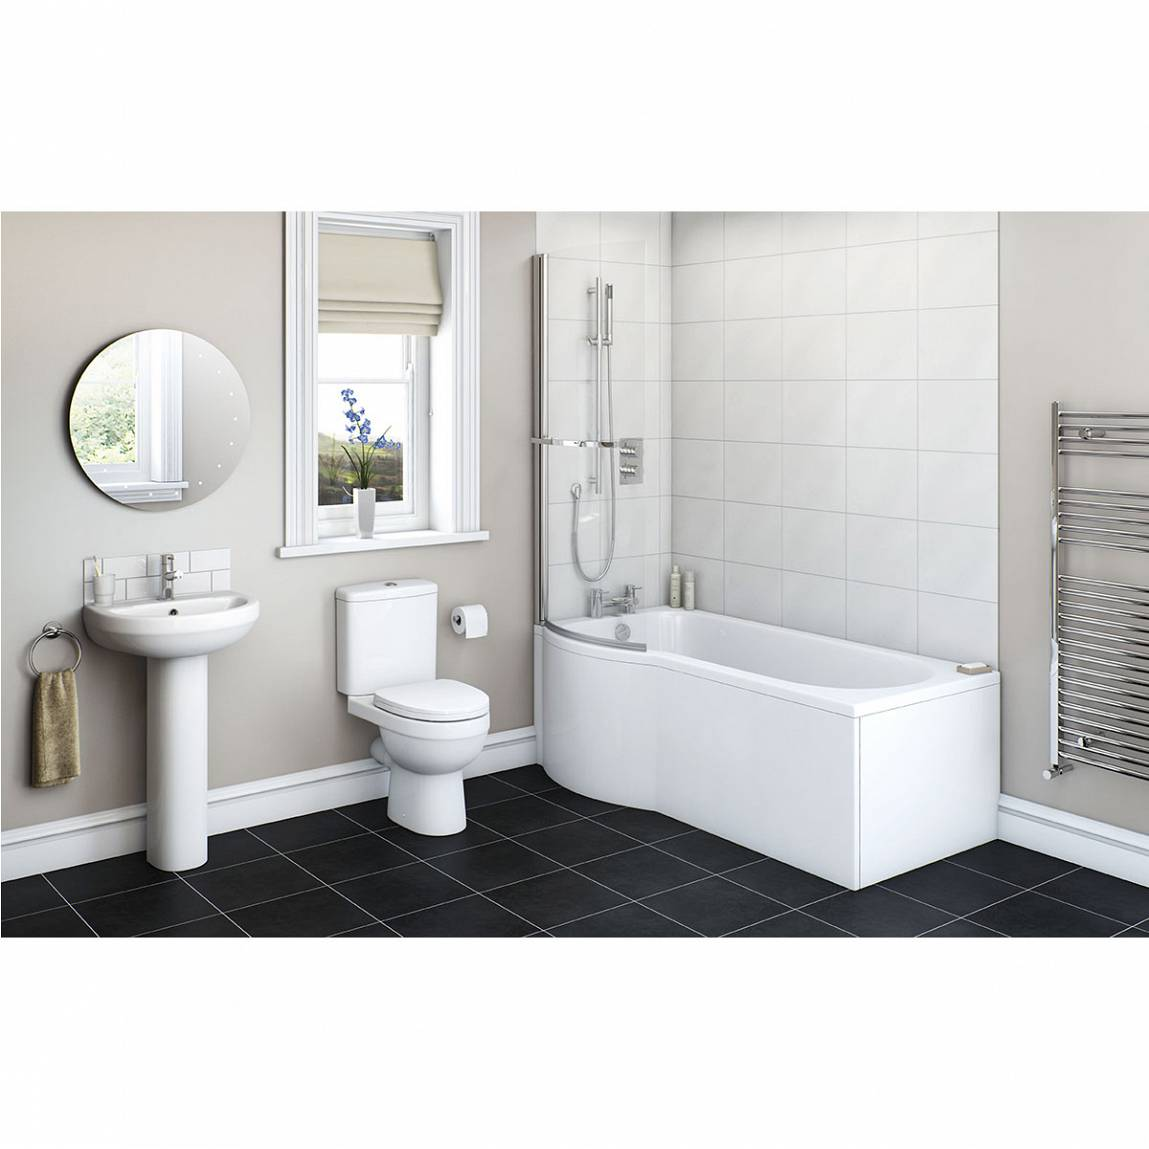 Image of Energy Bathroom Suite with Evesham 1700 x 850 Shower Bath LH